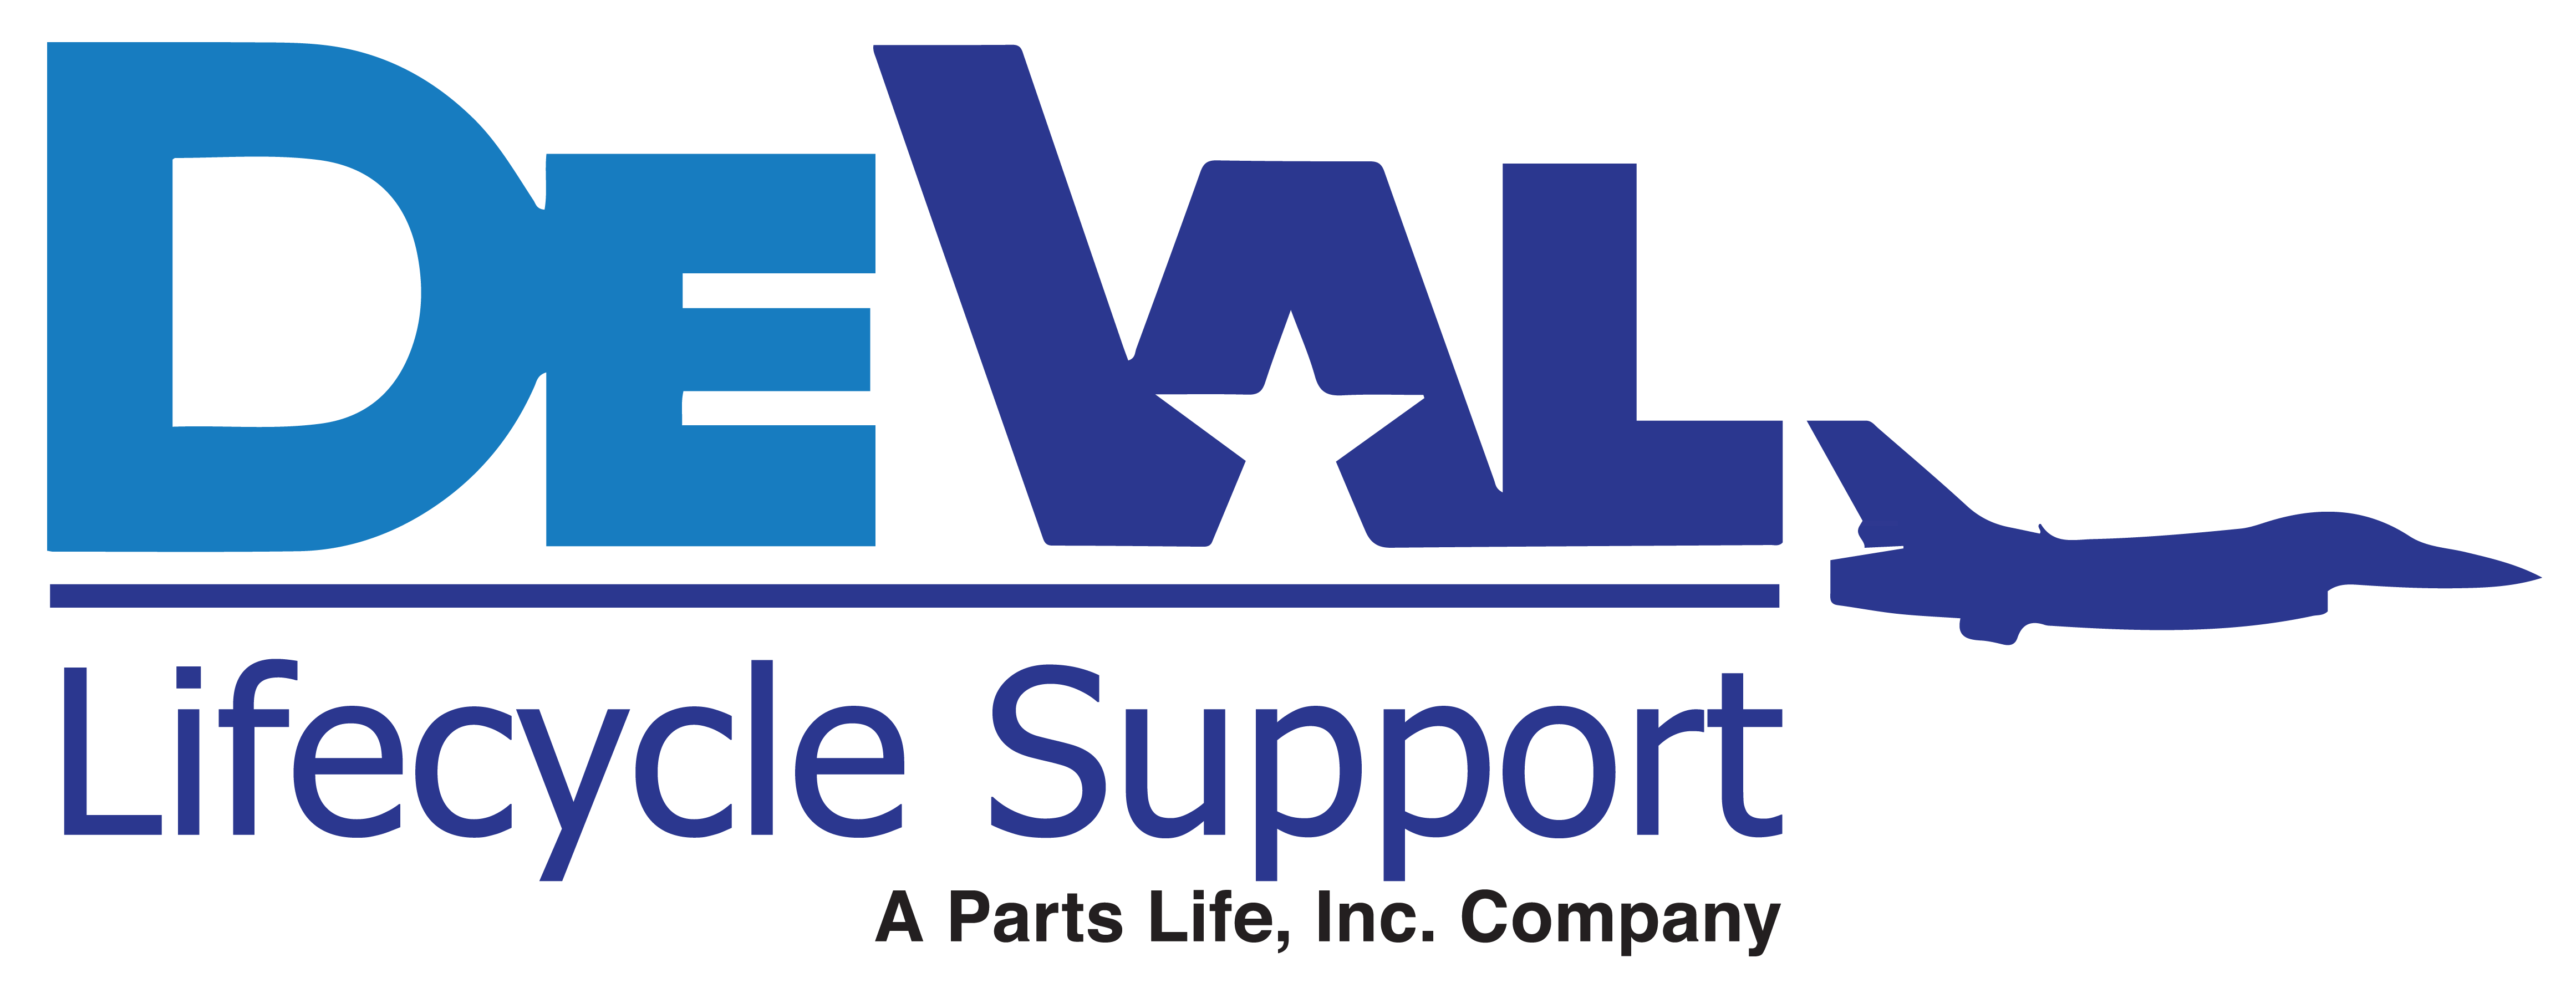 DeVal Lifecycle Support logo